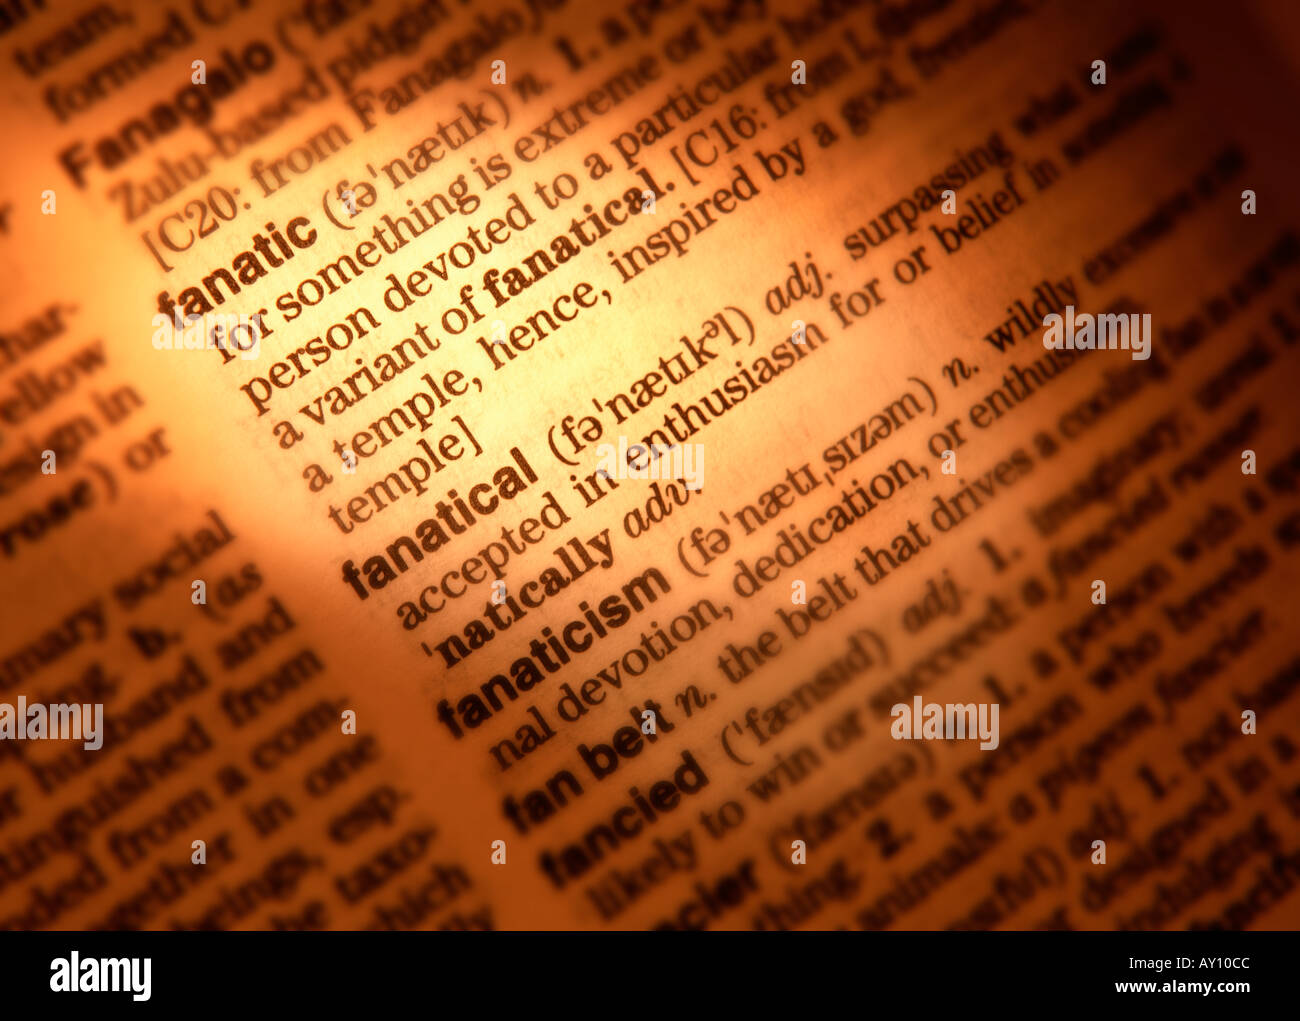 Awesome CLOSE UP OF DICTIONARY PAGE SHOWING DEFINITION OF THE WORDS FANATIC  FANATICAL